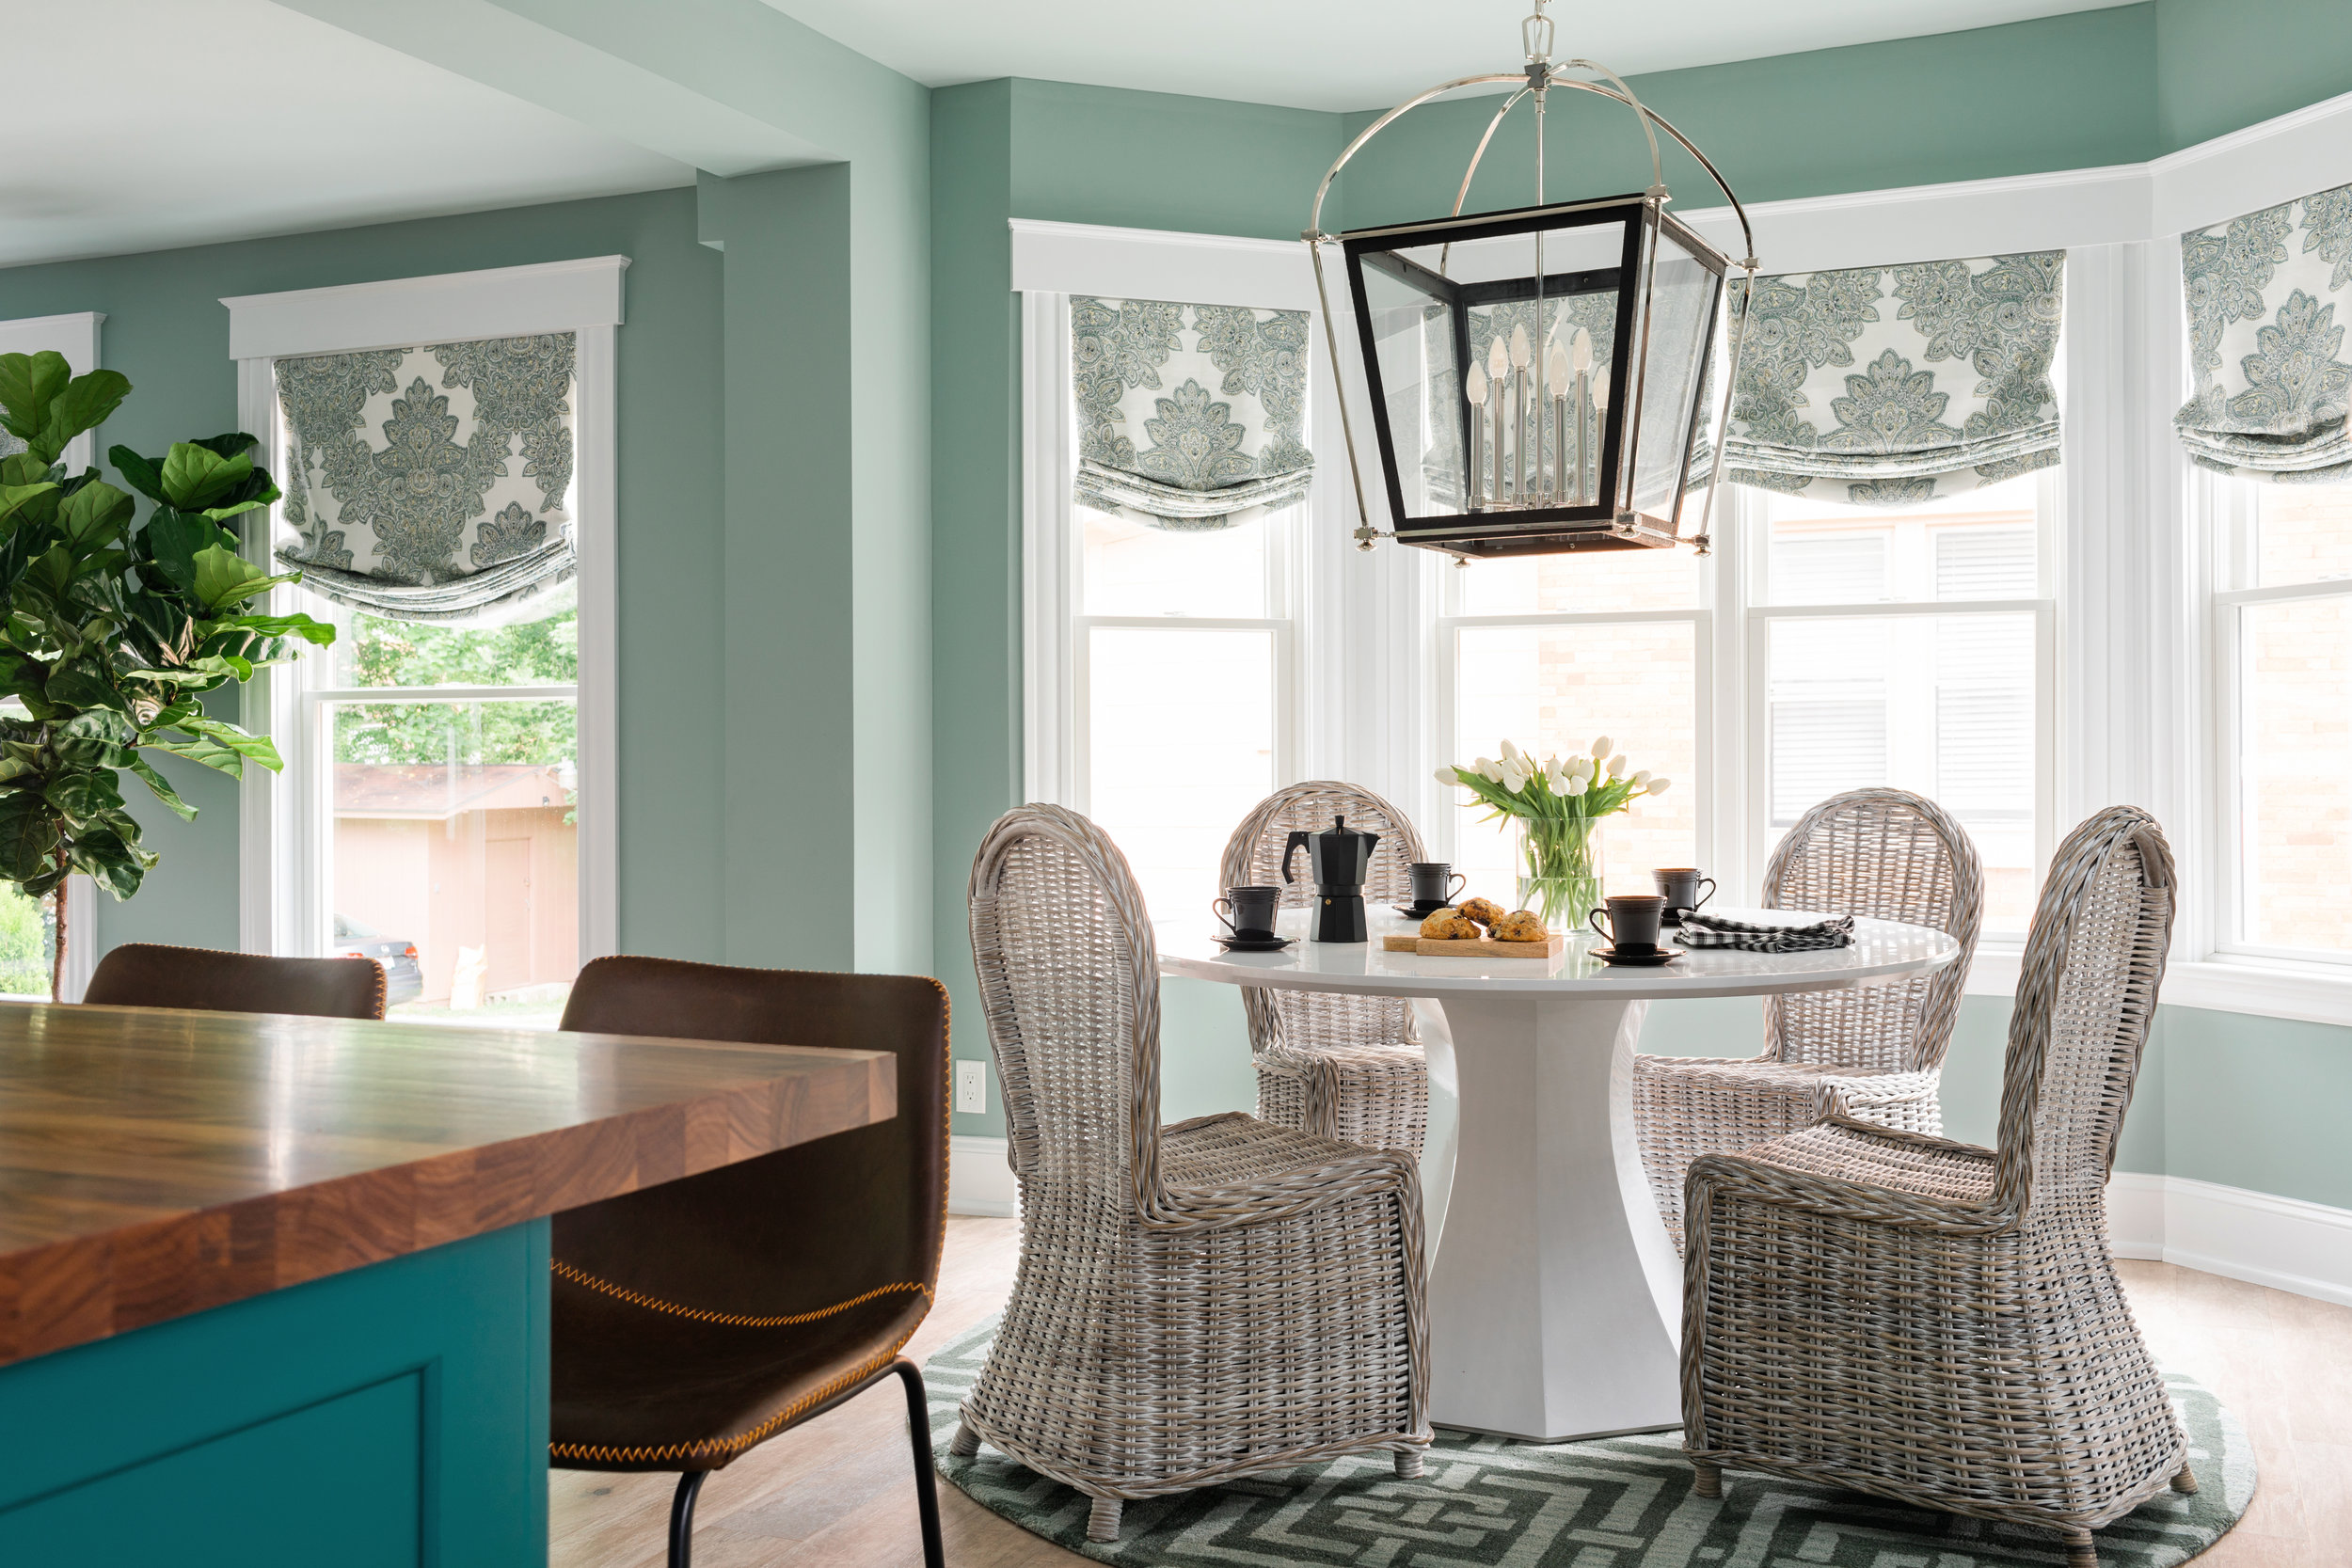 uo2018_dining-room-11-wide-from-kitchen-KB2A0117_h.jpg